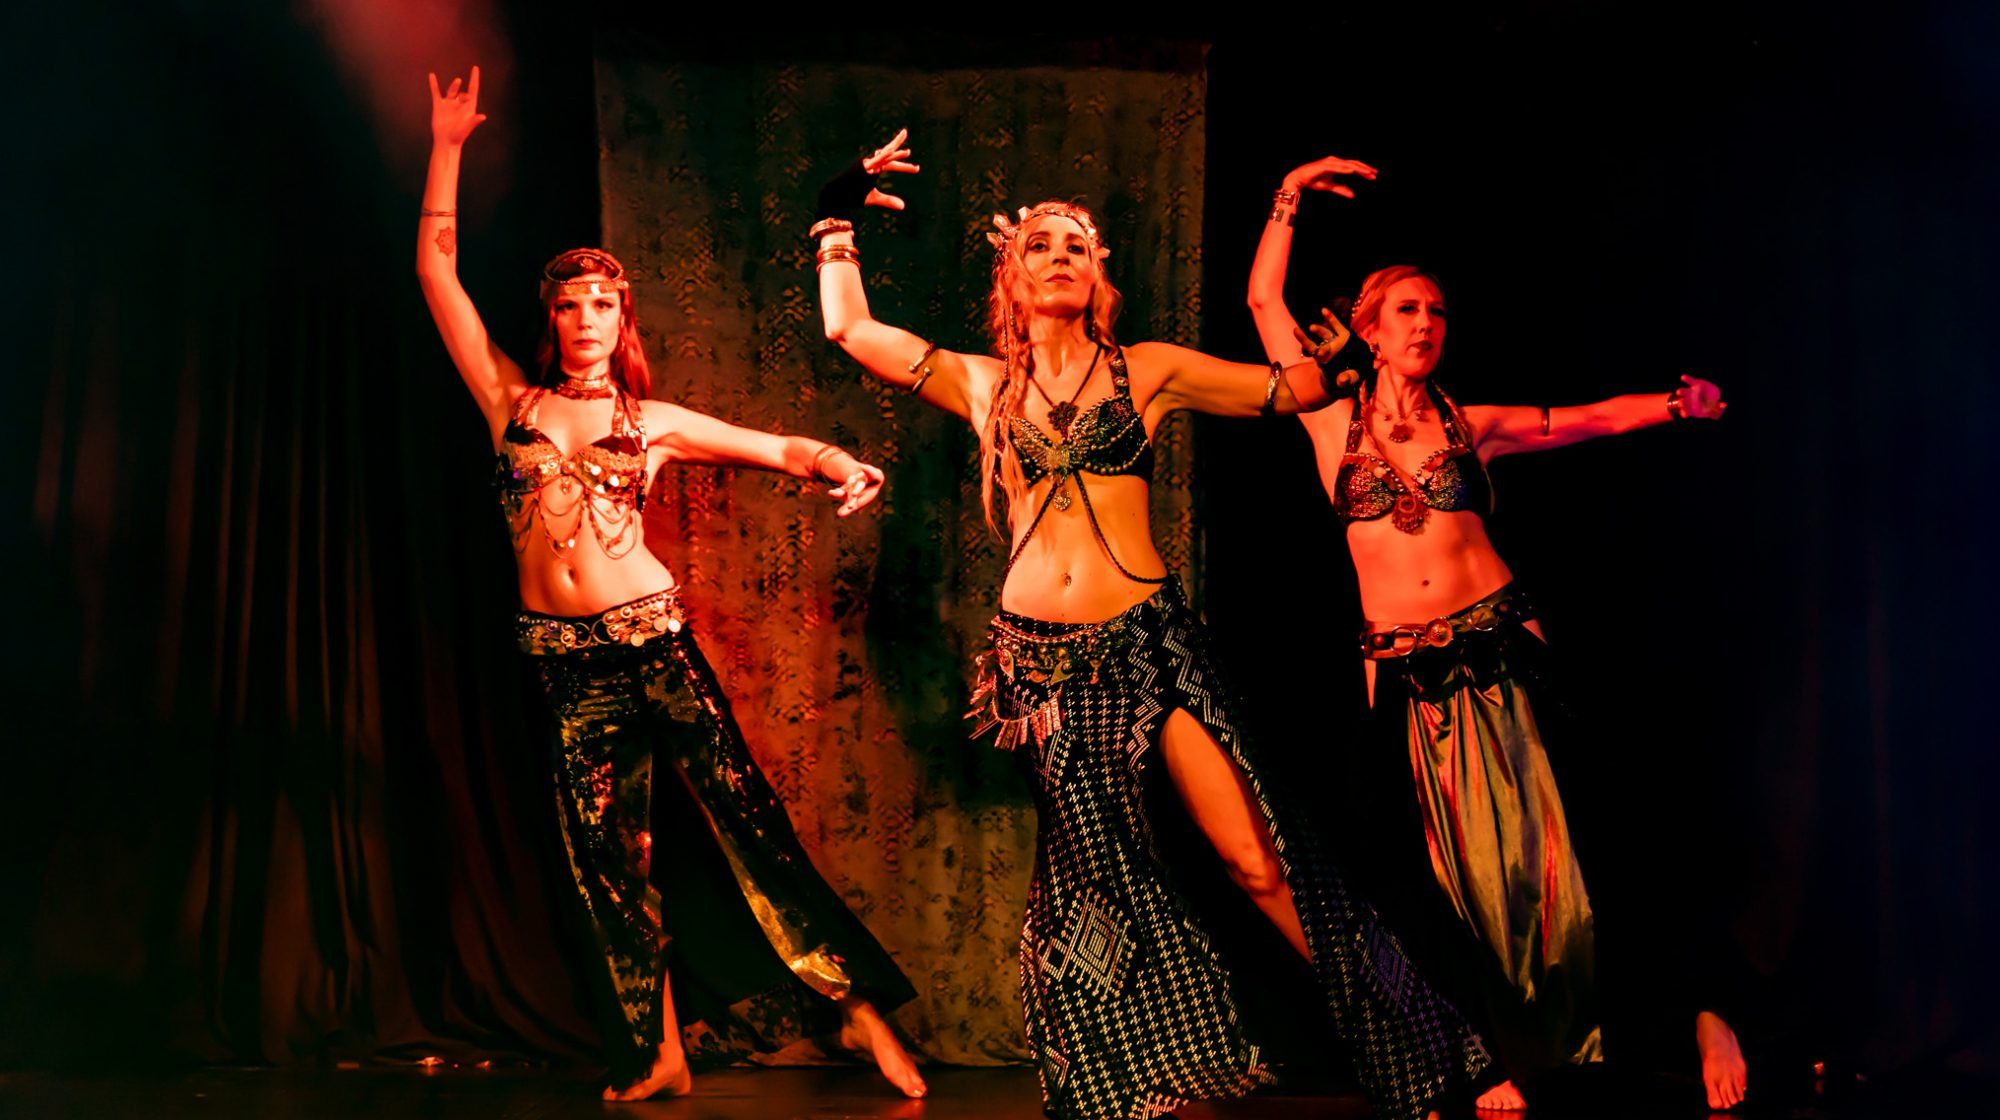 Entwined Bellydance